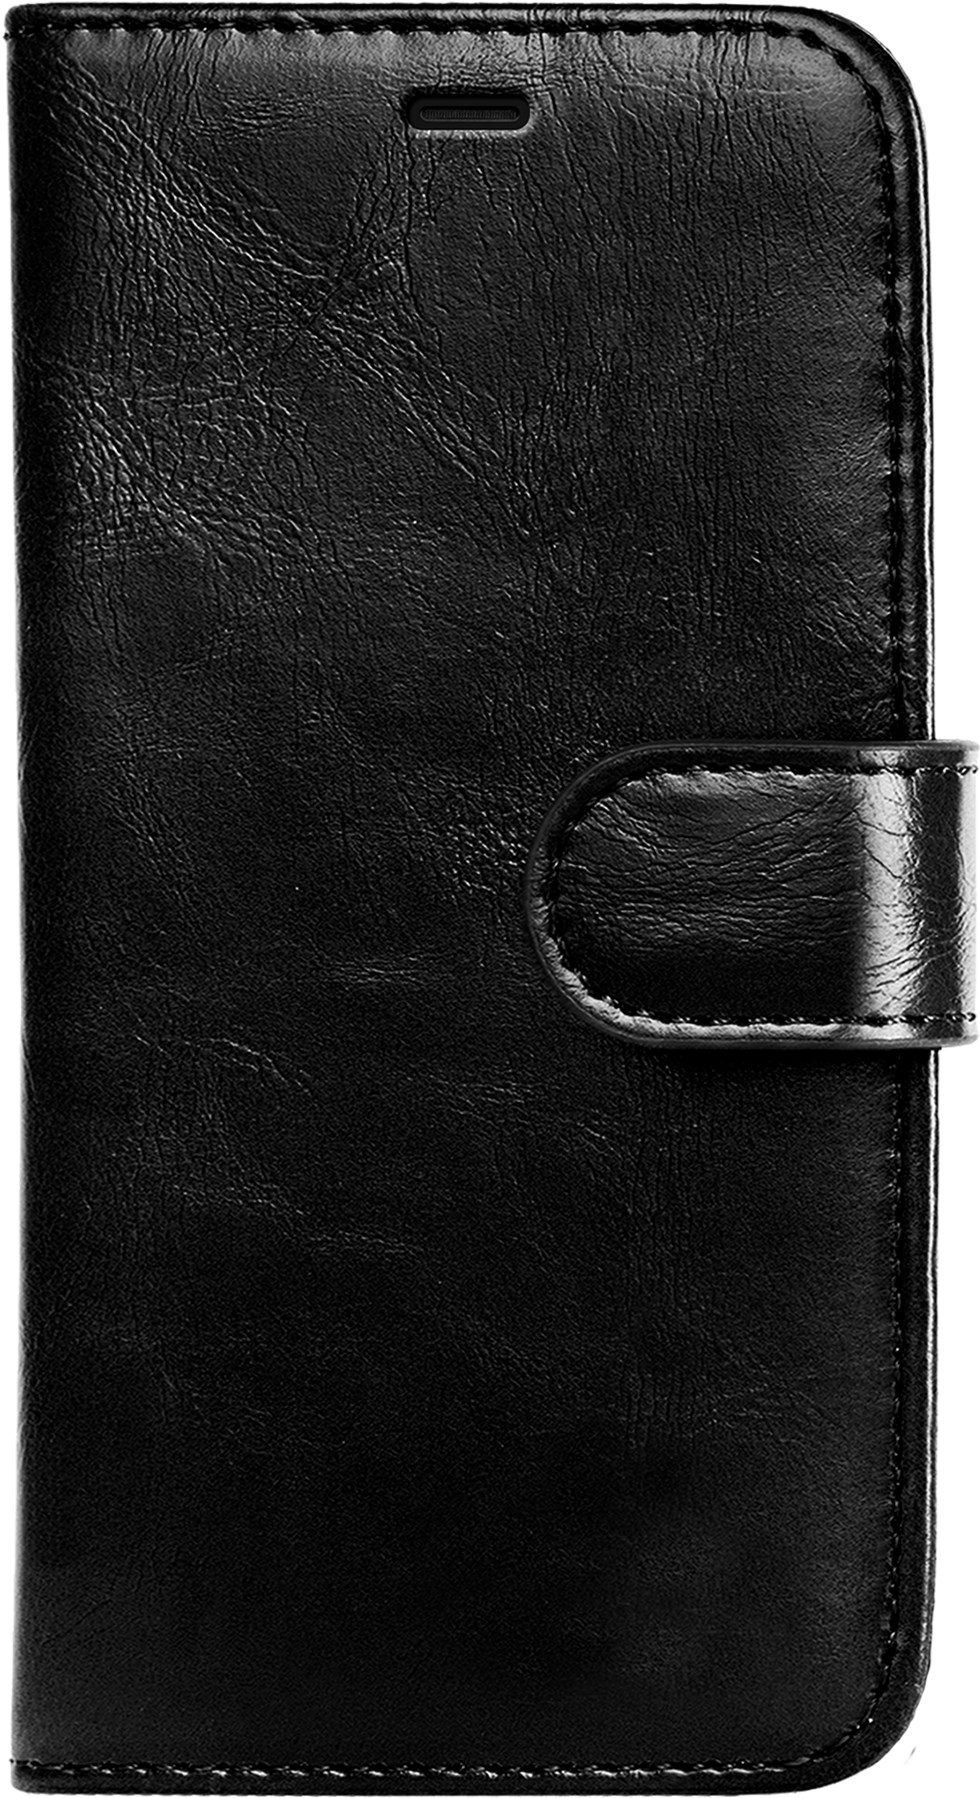 iDeal of Sweden Ideal Magnet Wallet + Iphone 11 Black